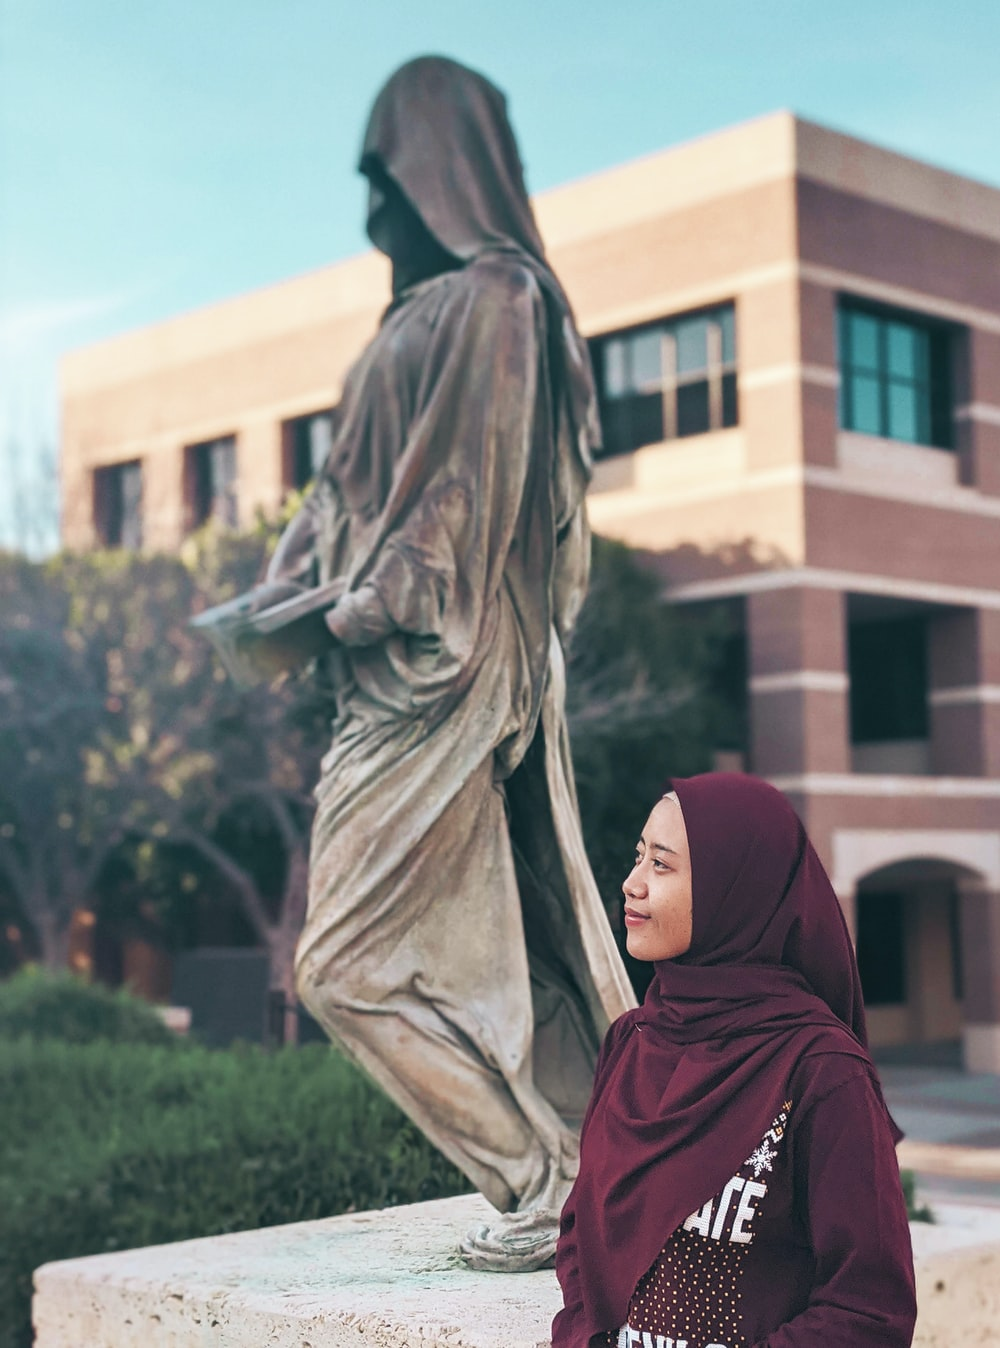 woman in red hijab standing near statue